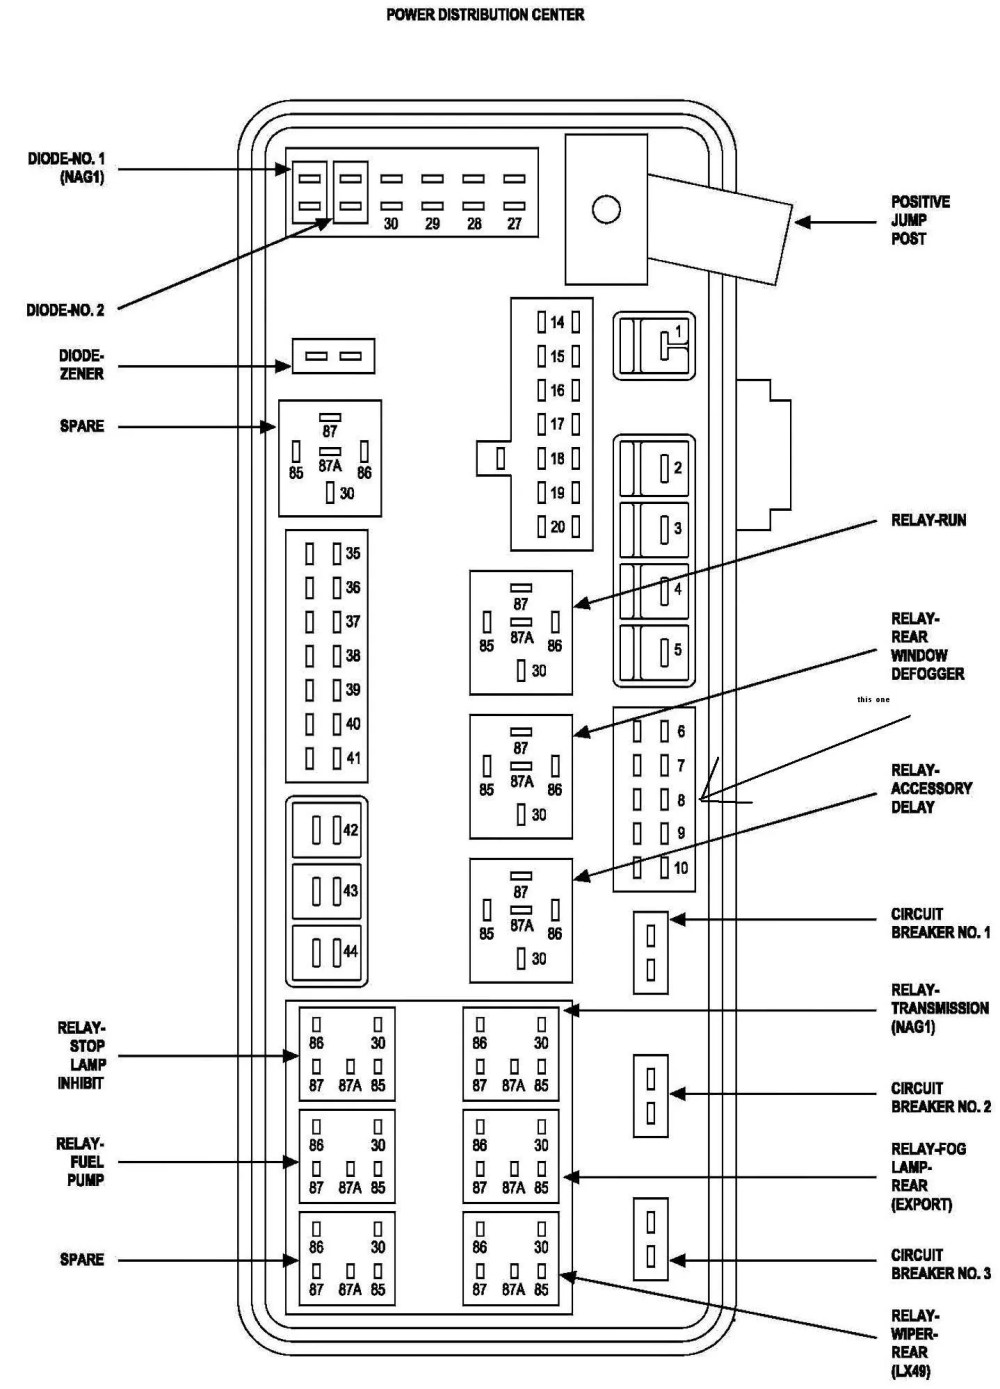 medium resolution of 2008 dodge sprinter fuse box diagram wiring diagram hub 2008 dodge sprinter fuse box diagram 2008 dodge sprinter fuse diagram